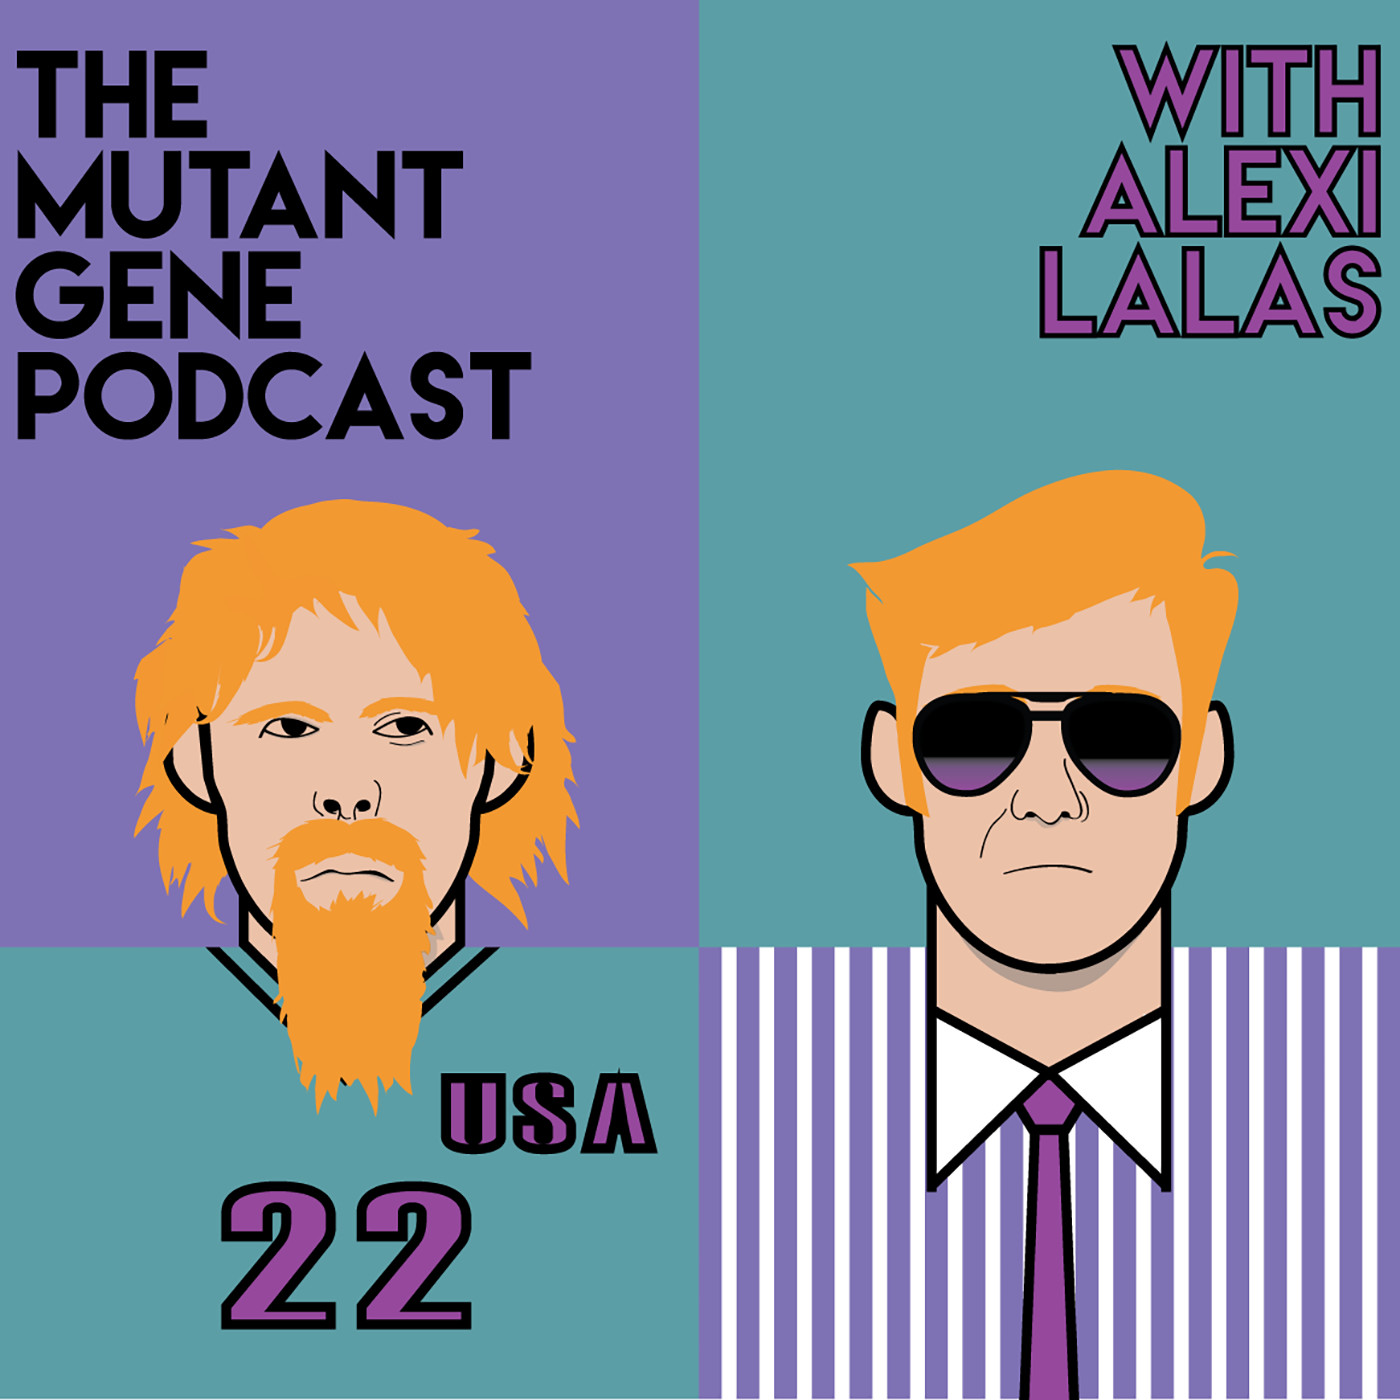 The Mutant Gene Podcast with Alexi Lalas